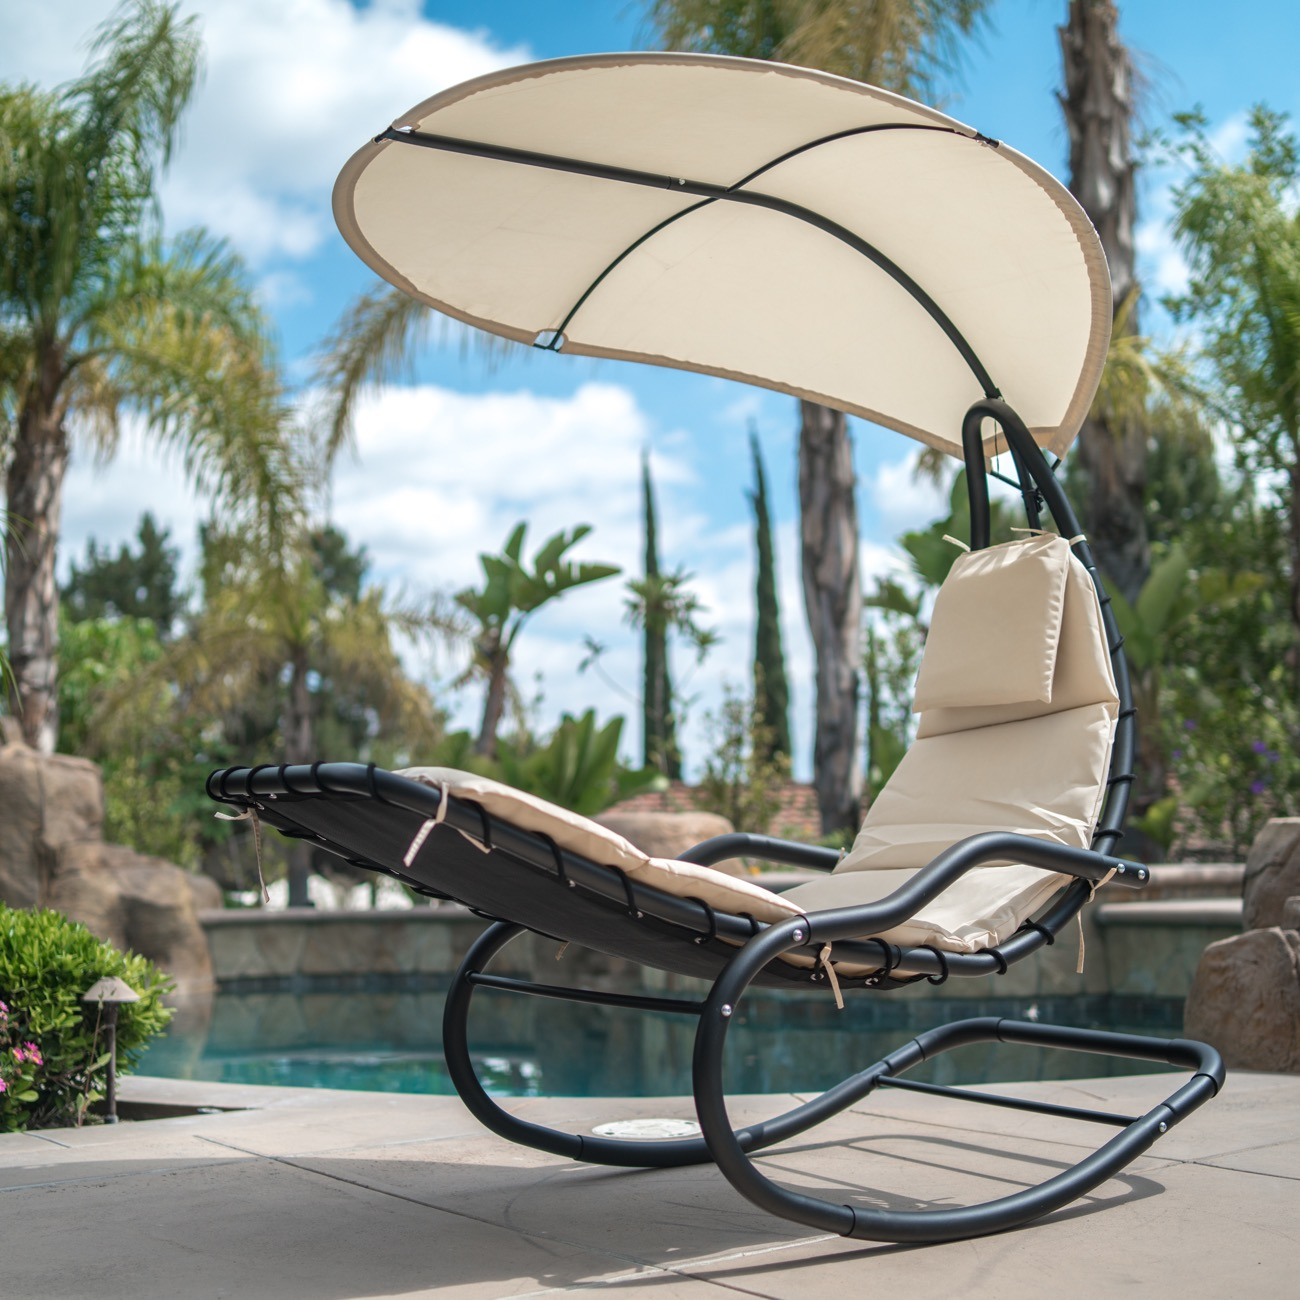 Incredible Details About Outdoor Rocking Chaise Lounge Chair Cushion W Canopy Shade Blue Orange White Forskolin Free Trial Chair Design Images Forskolin Free Trialorg